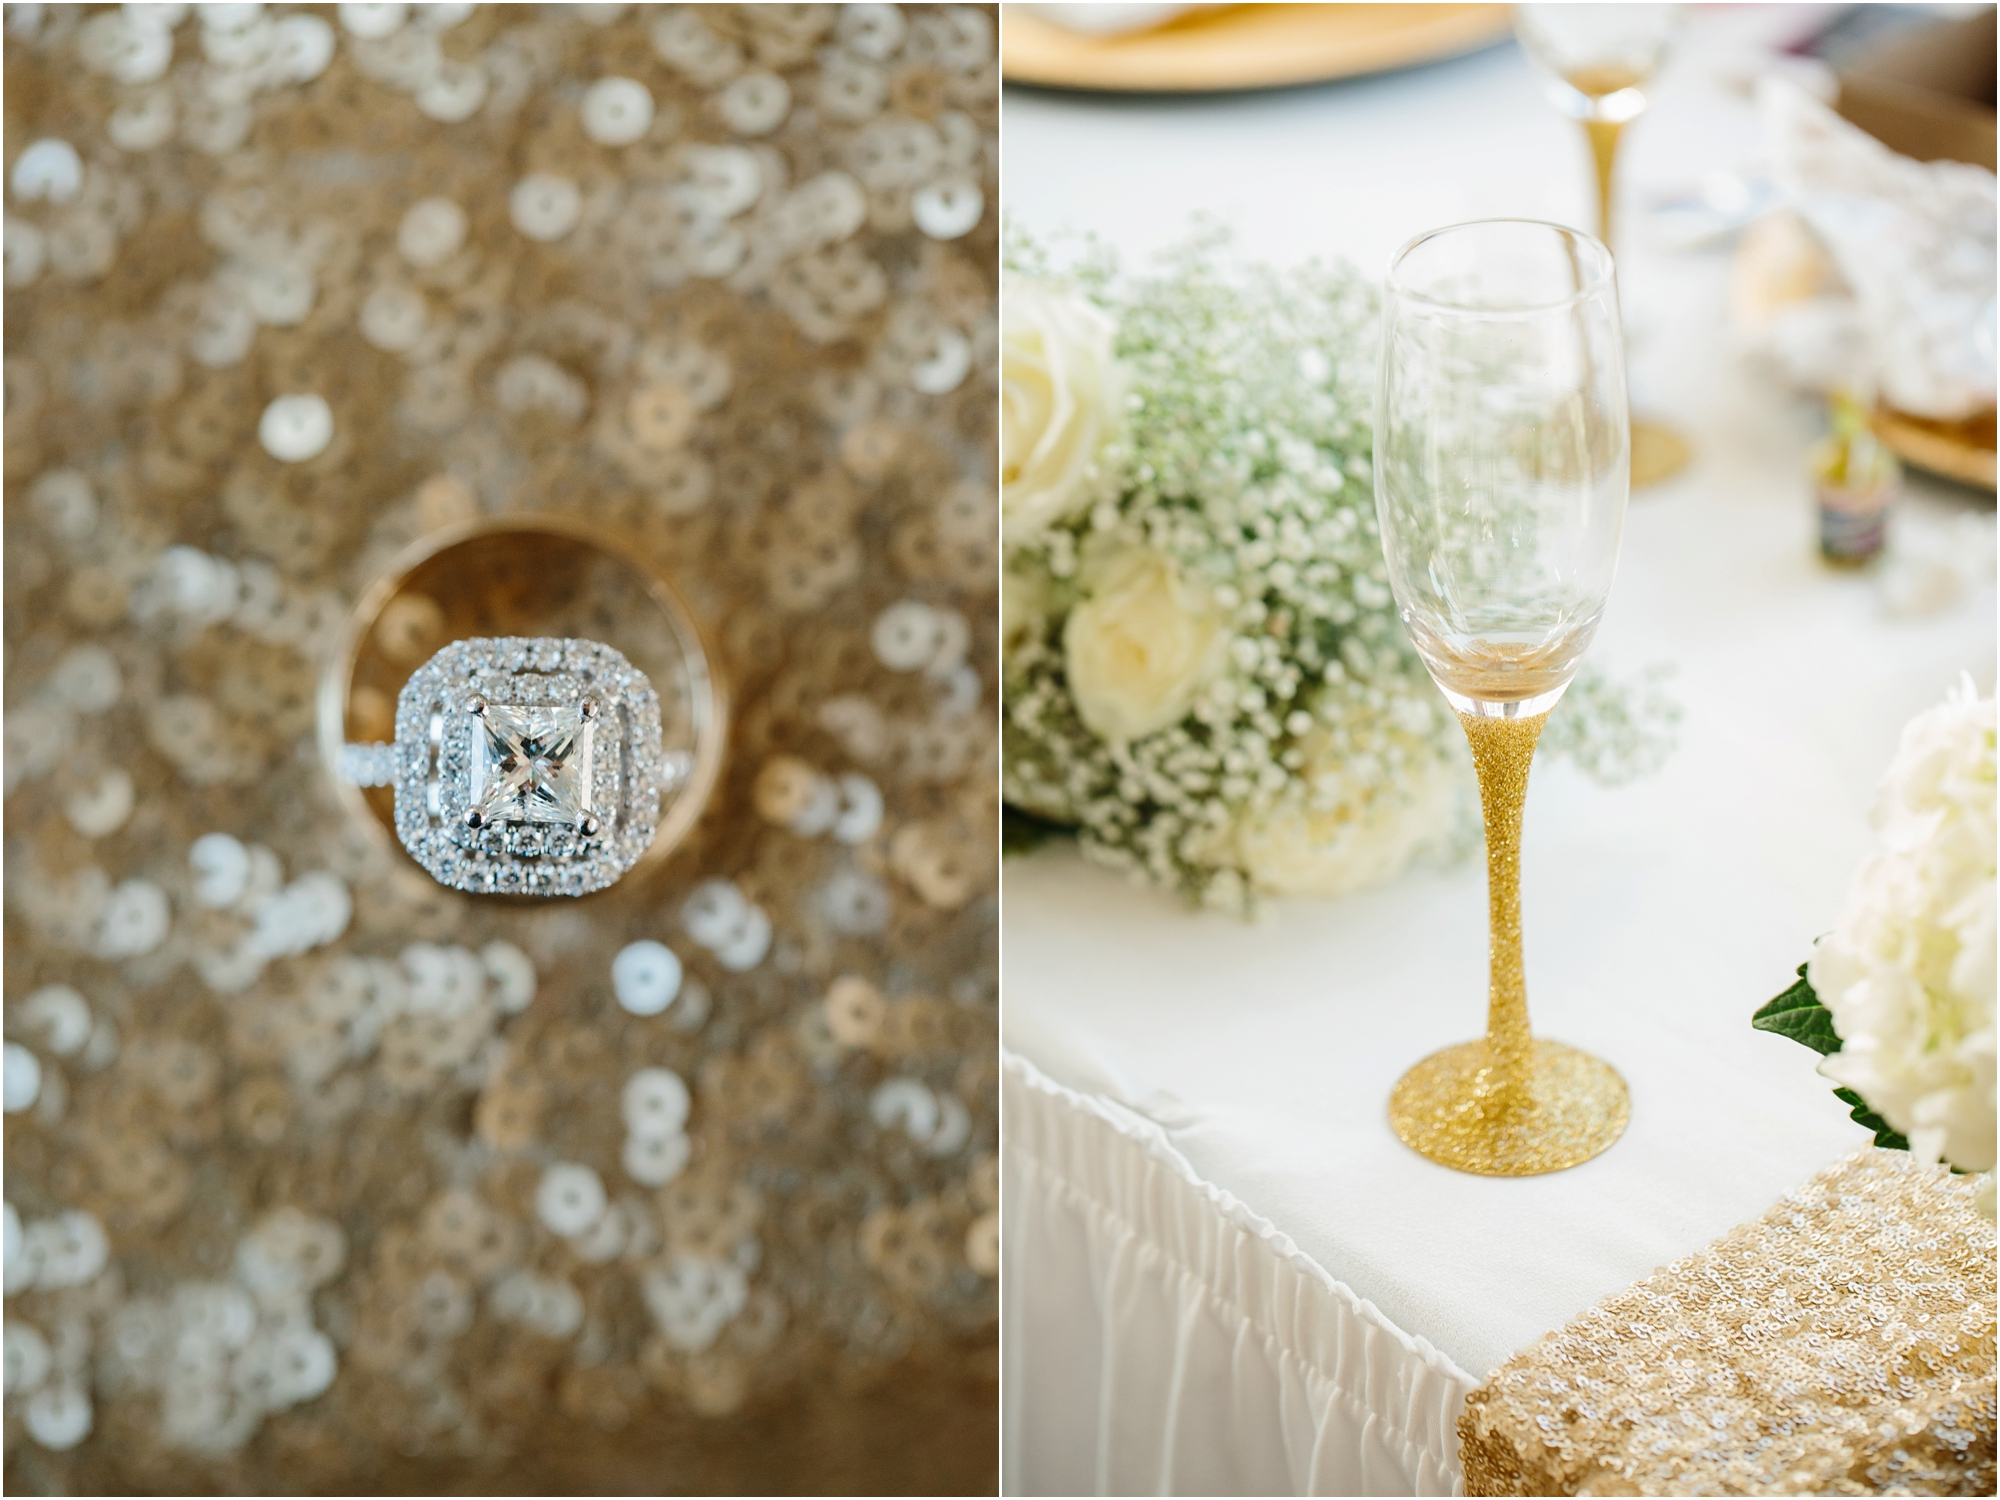 Wedding Ring - http://brittneyhannonphotography.com